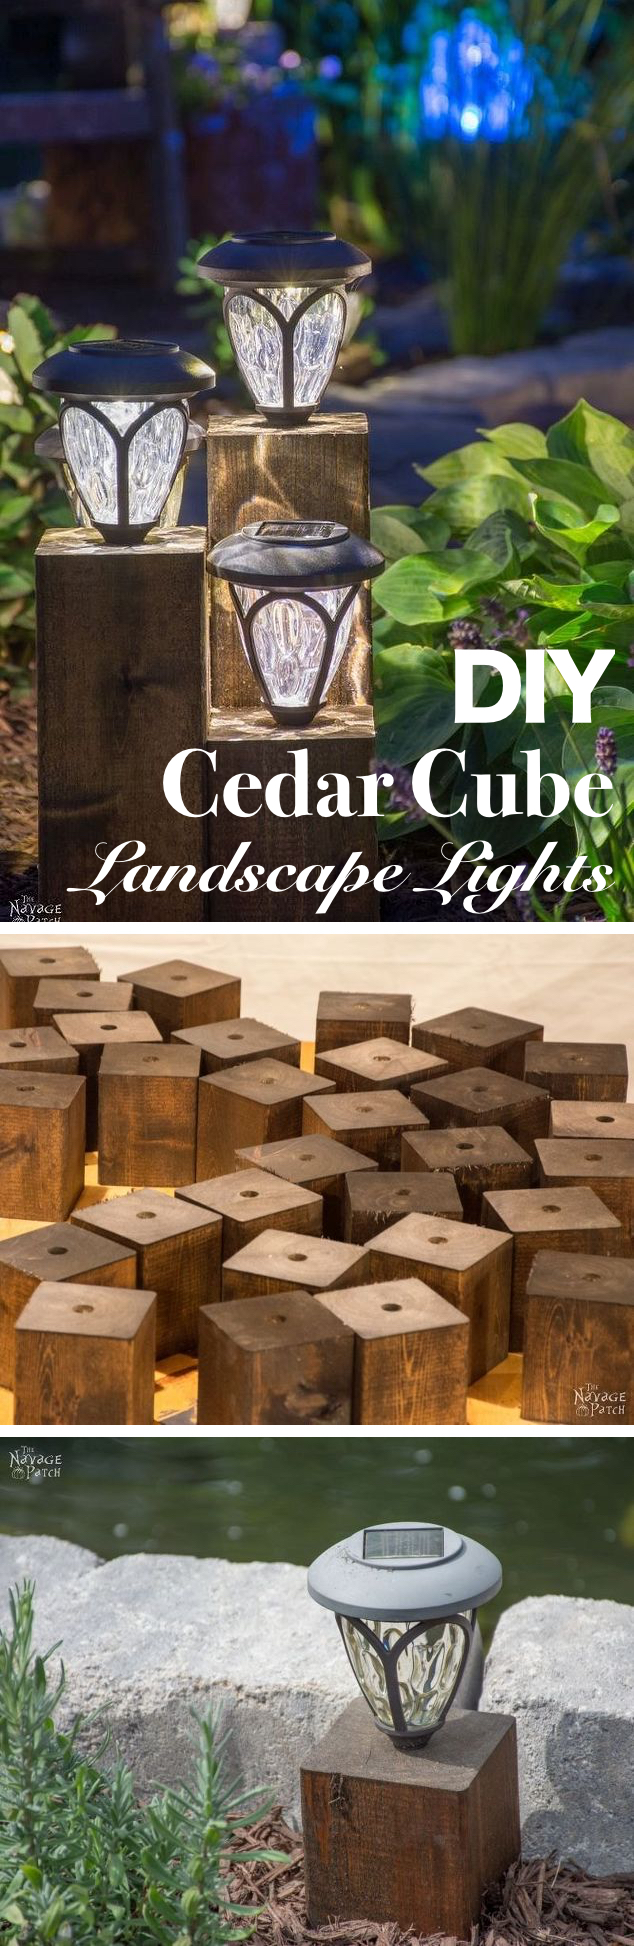 15 brilliant diy outdoor lighting ideas for summer homelovr cedar cube landscape lights diy mozeypictures Images